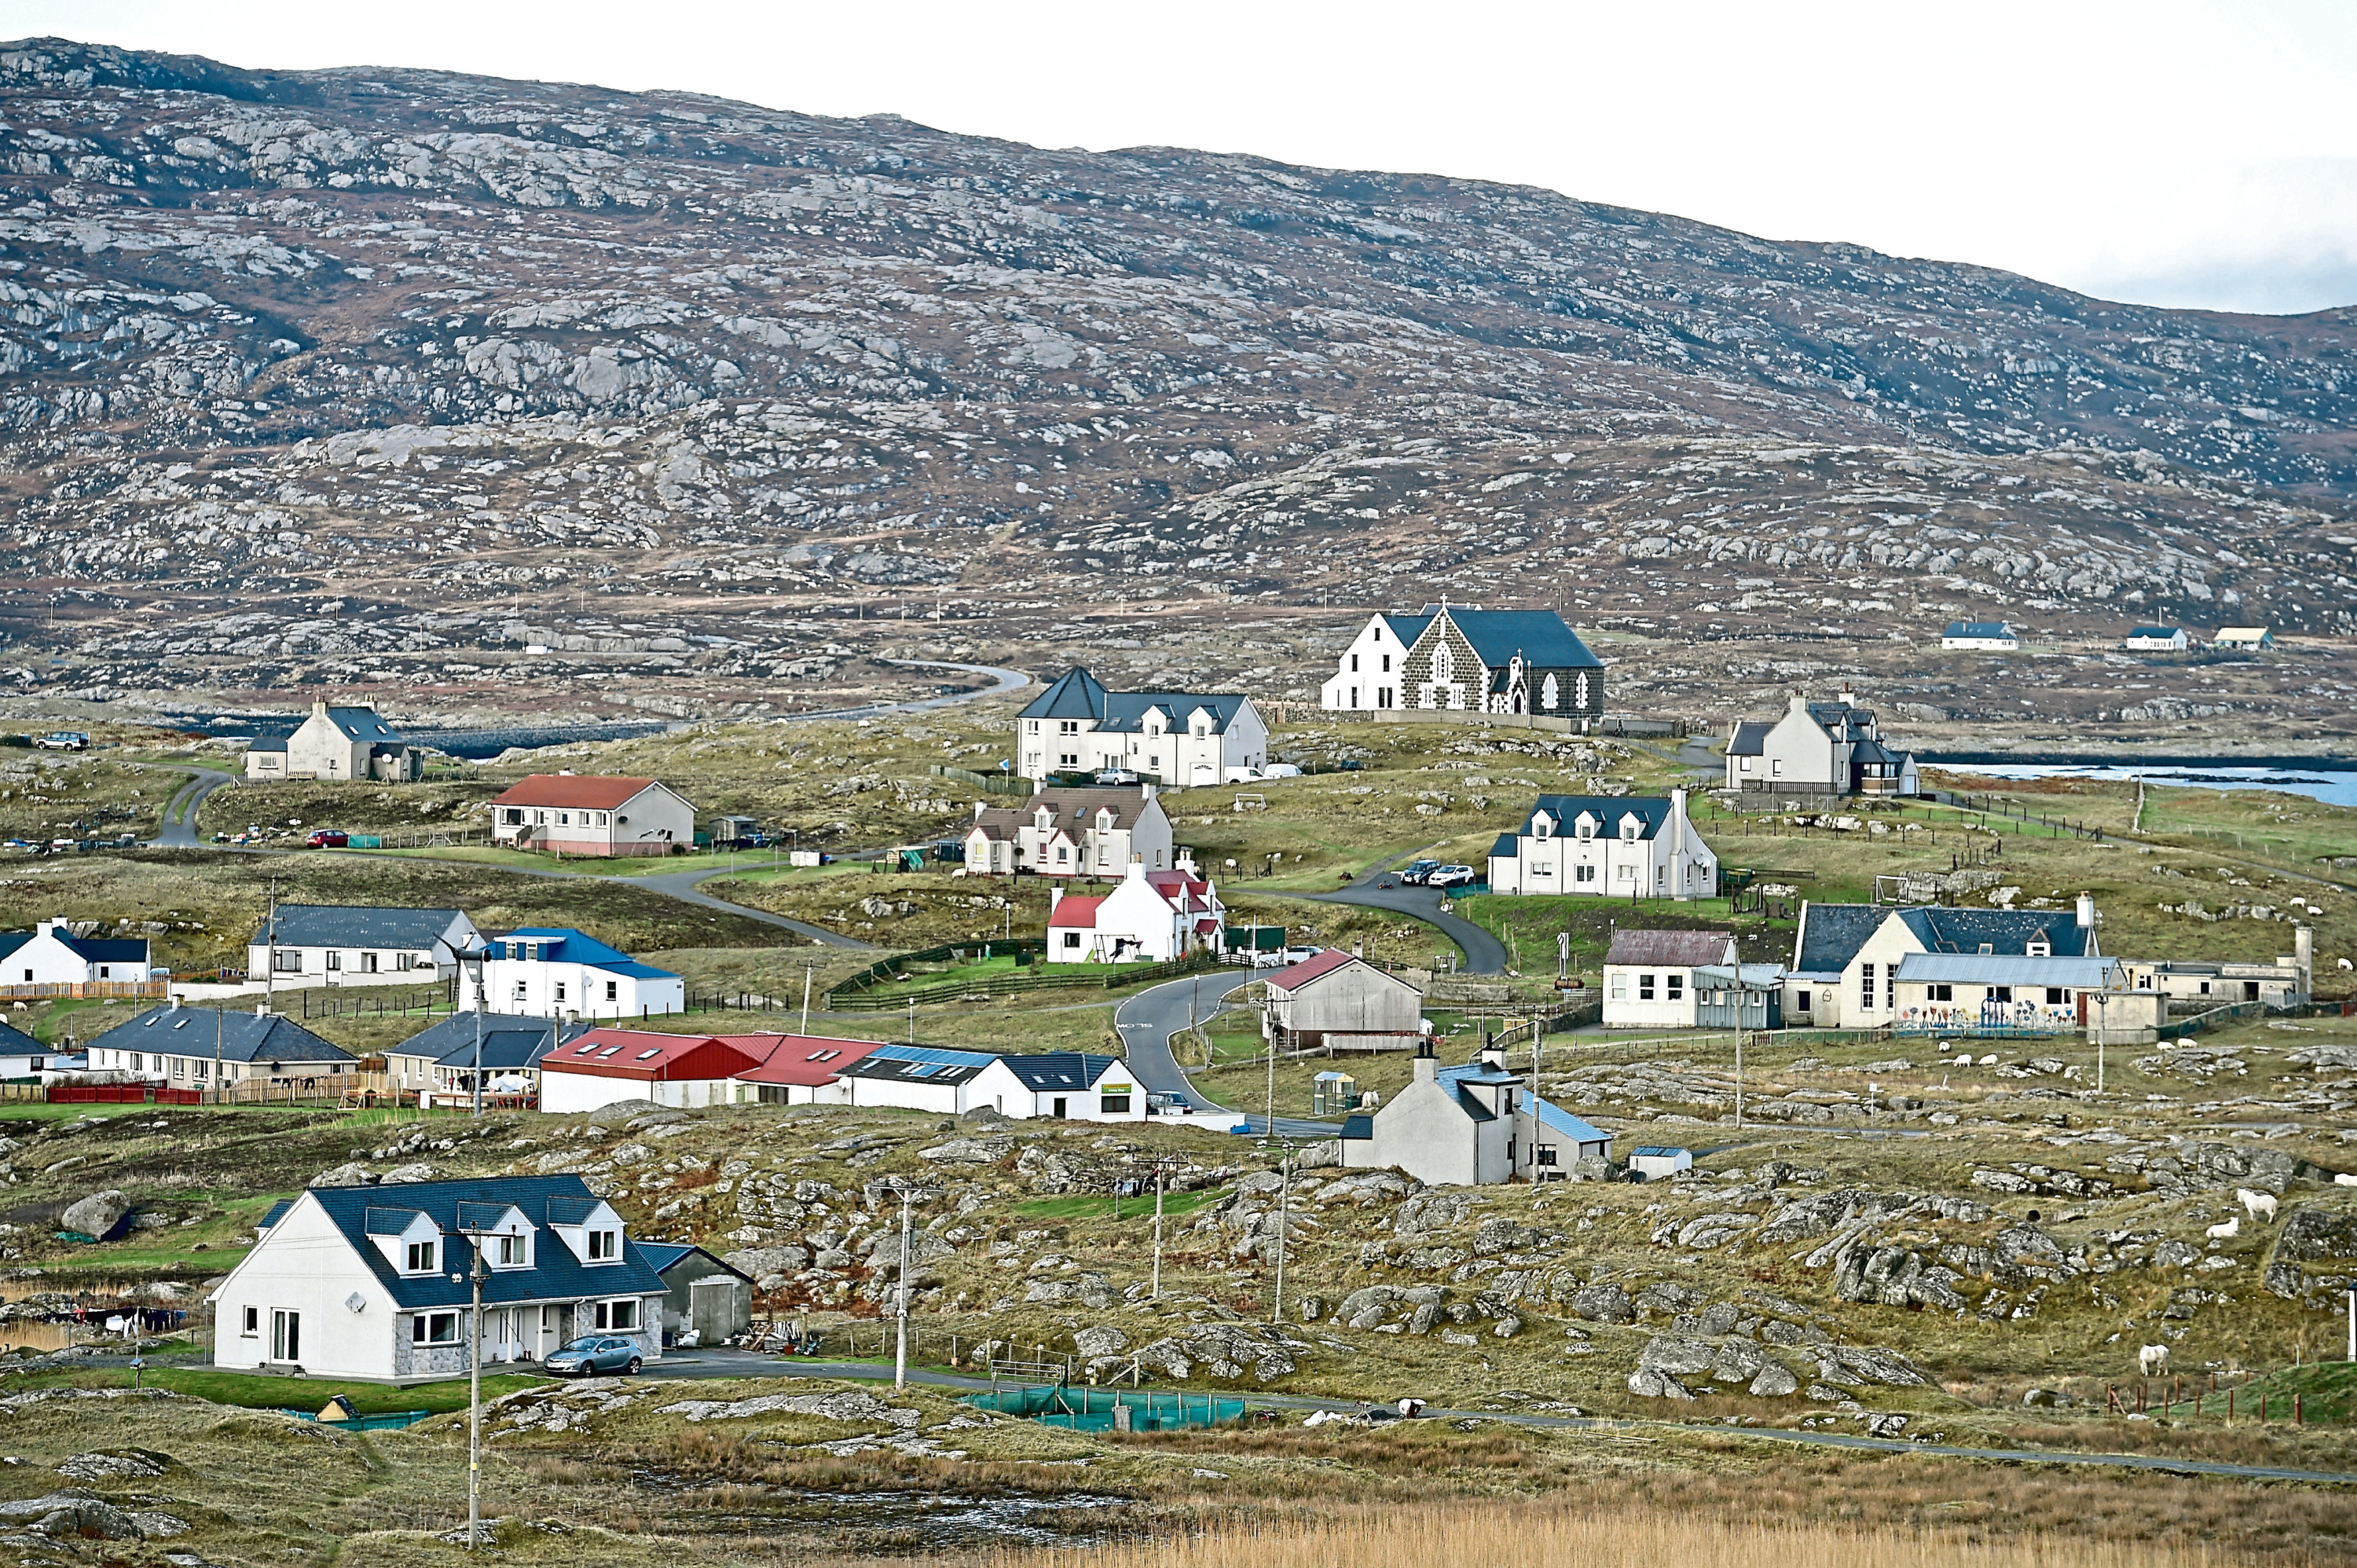 The Outer Hebrides lost 10.5% of its population between 1991 and 2001, and saw an overall 43% decline between 1901 and 2001, before rebounding modestly between 2001 and 2011.